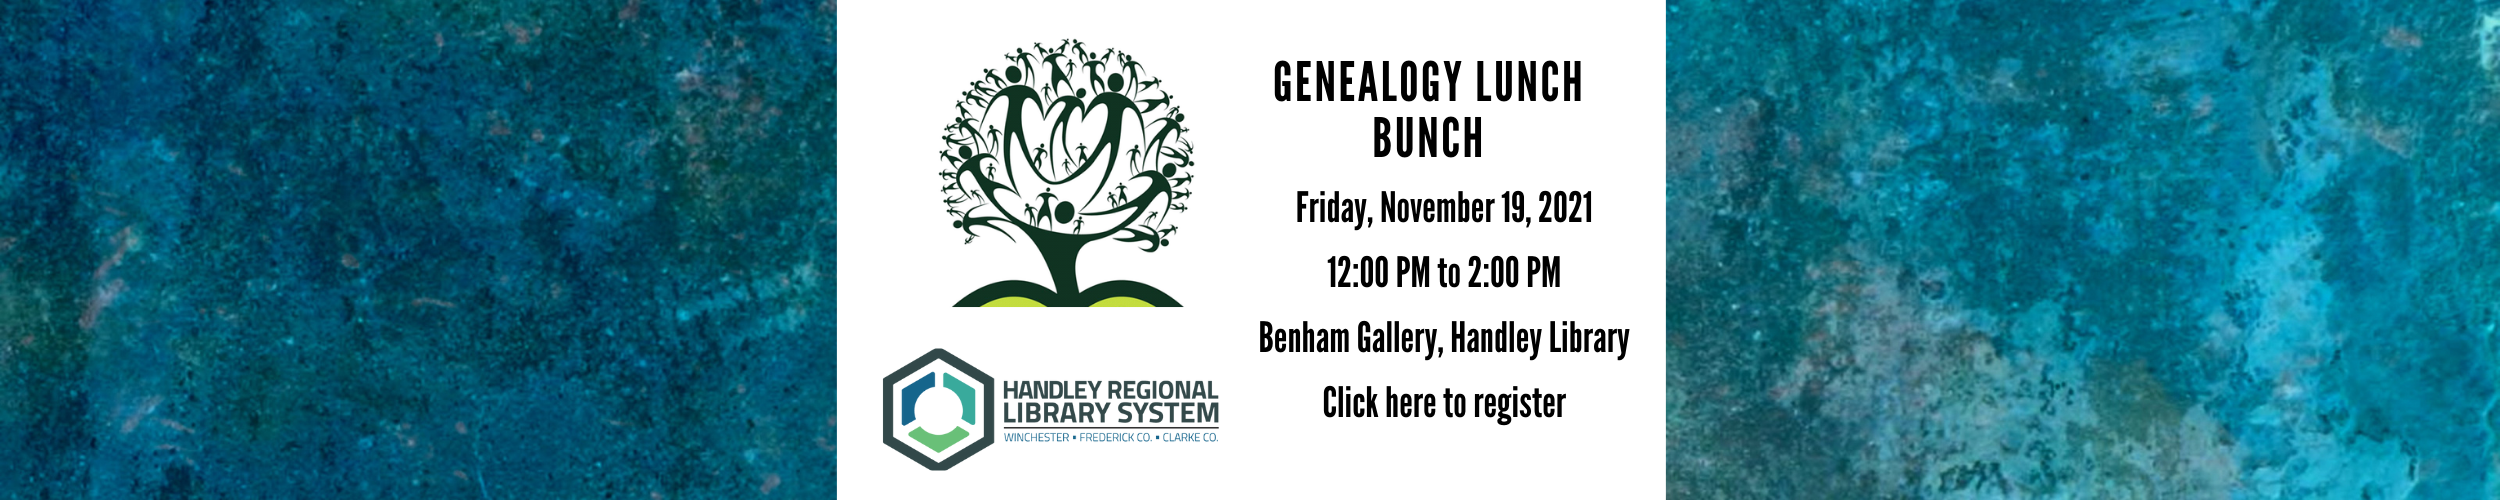 Click here to register for Genealogy Lunch Bunch